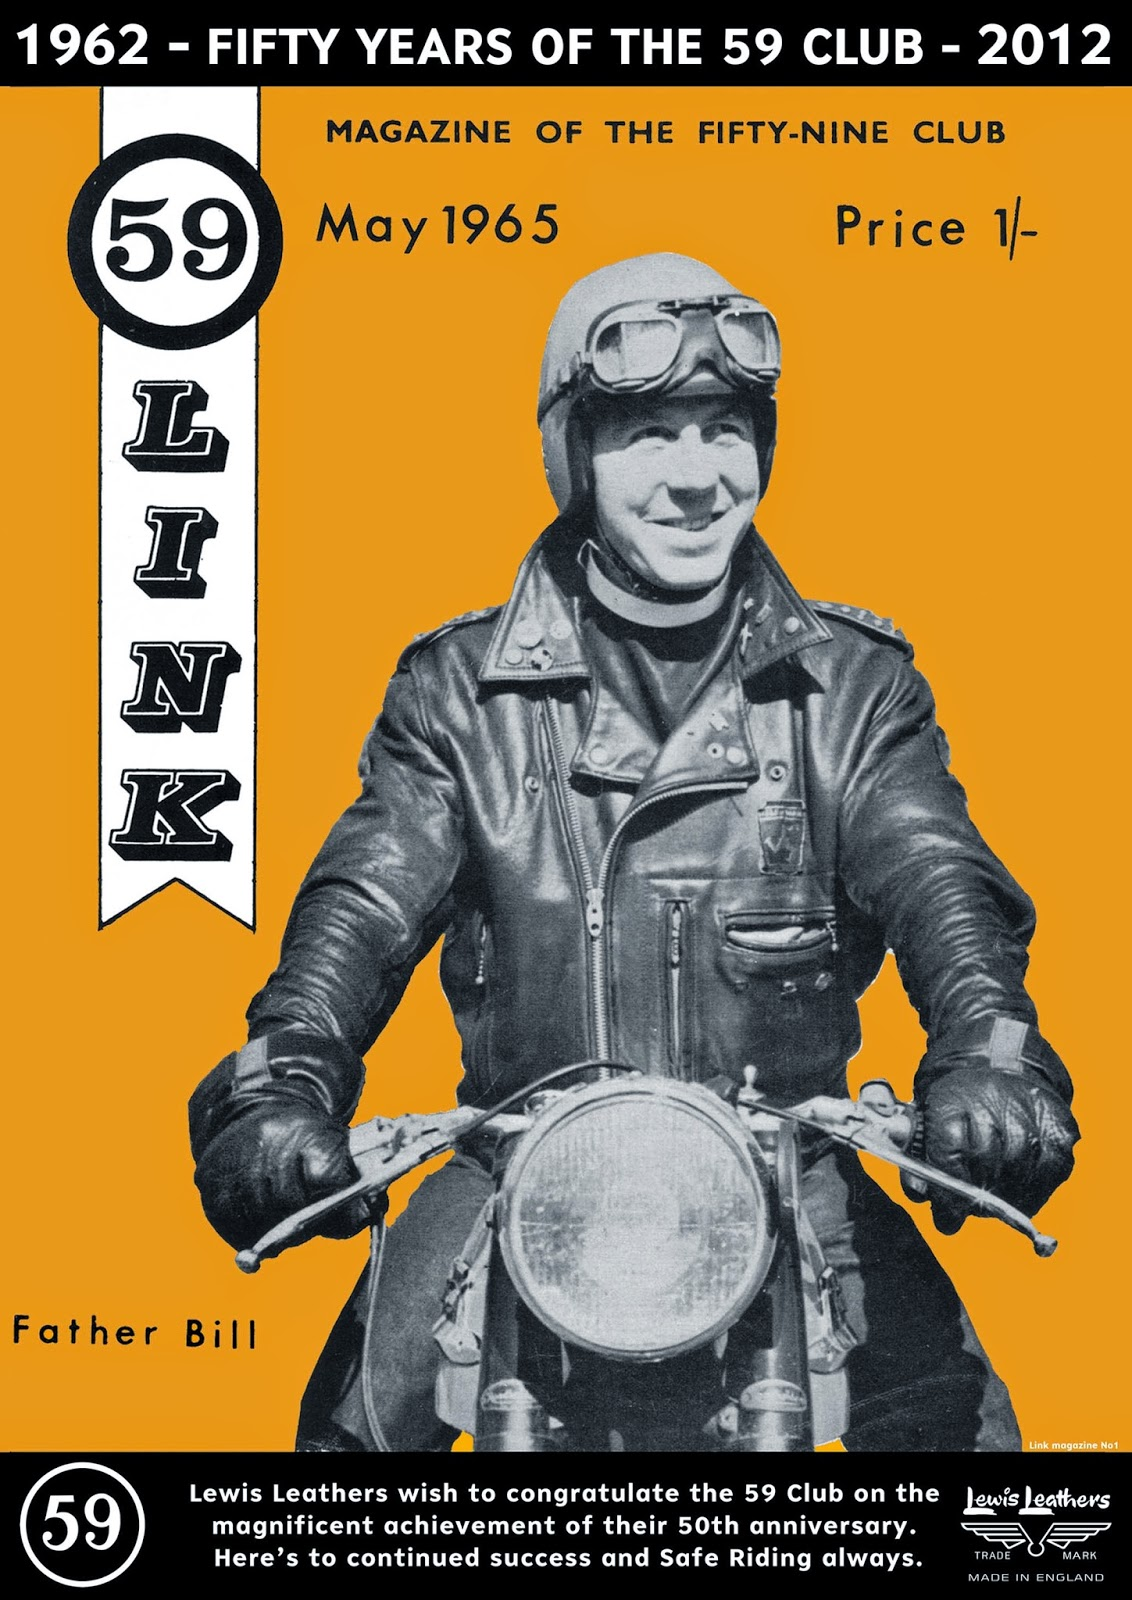 Lewis Leathers - 59 Club